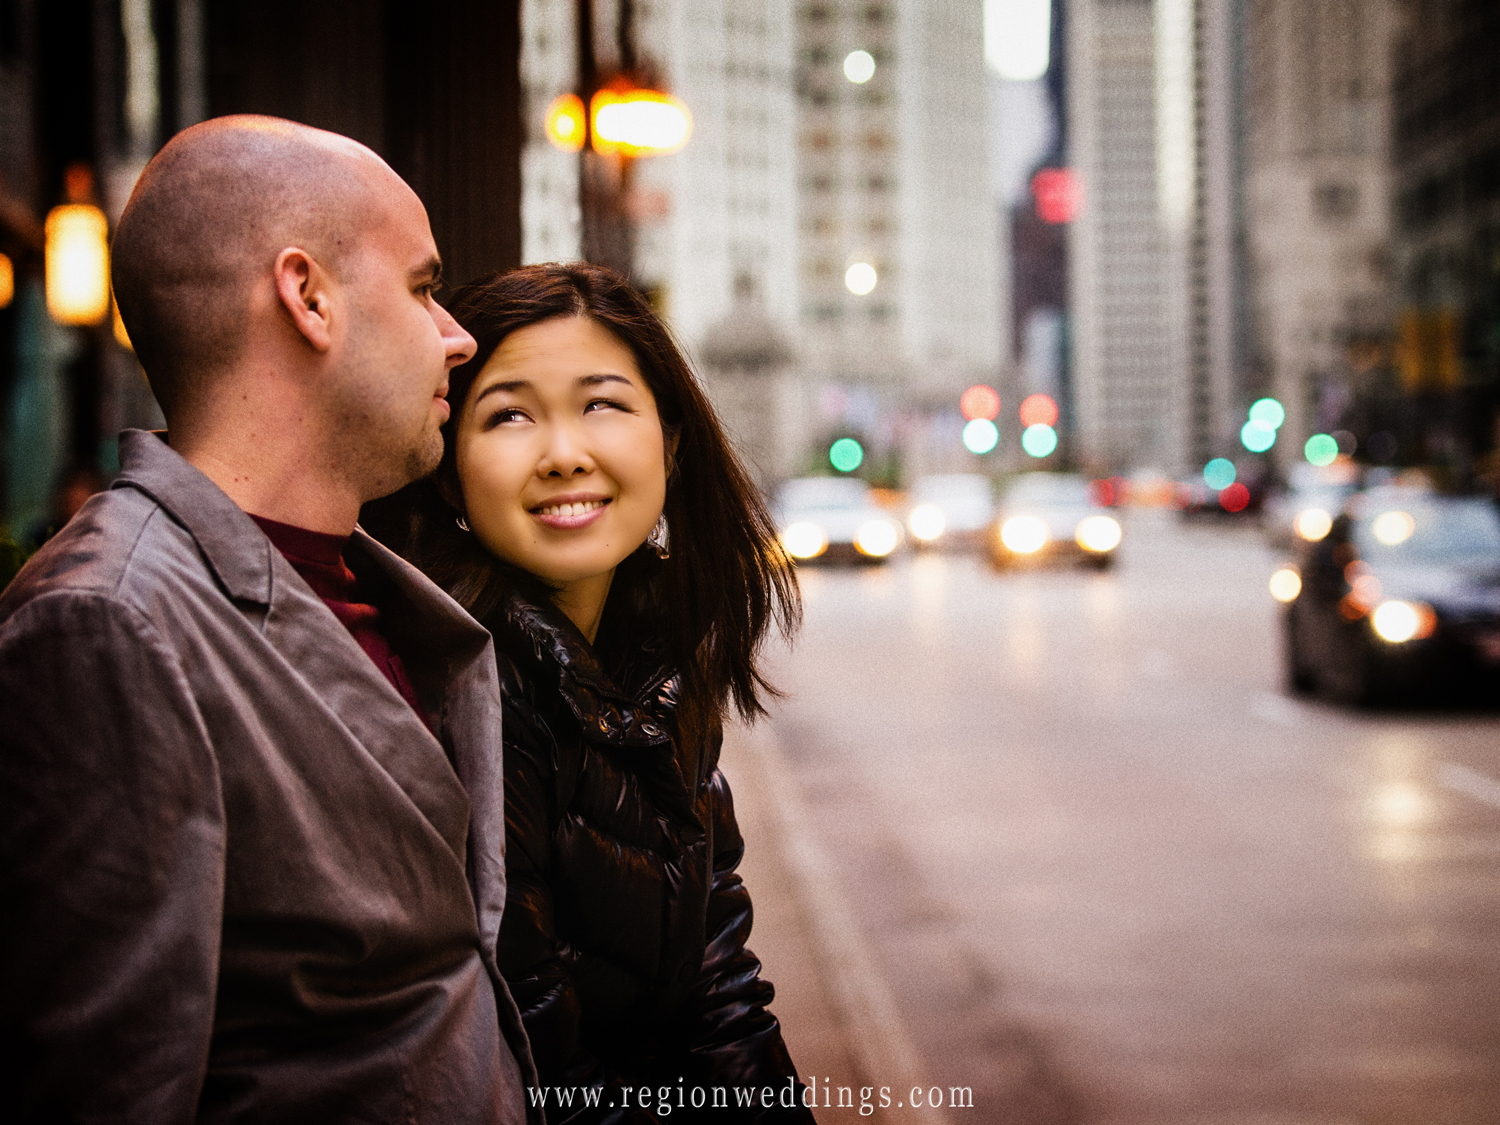 A couple gazes at each other on Michigan Avenue during their engagement photo session as night begins to fall with car headlights as the background.